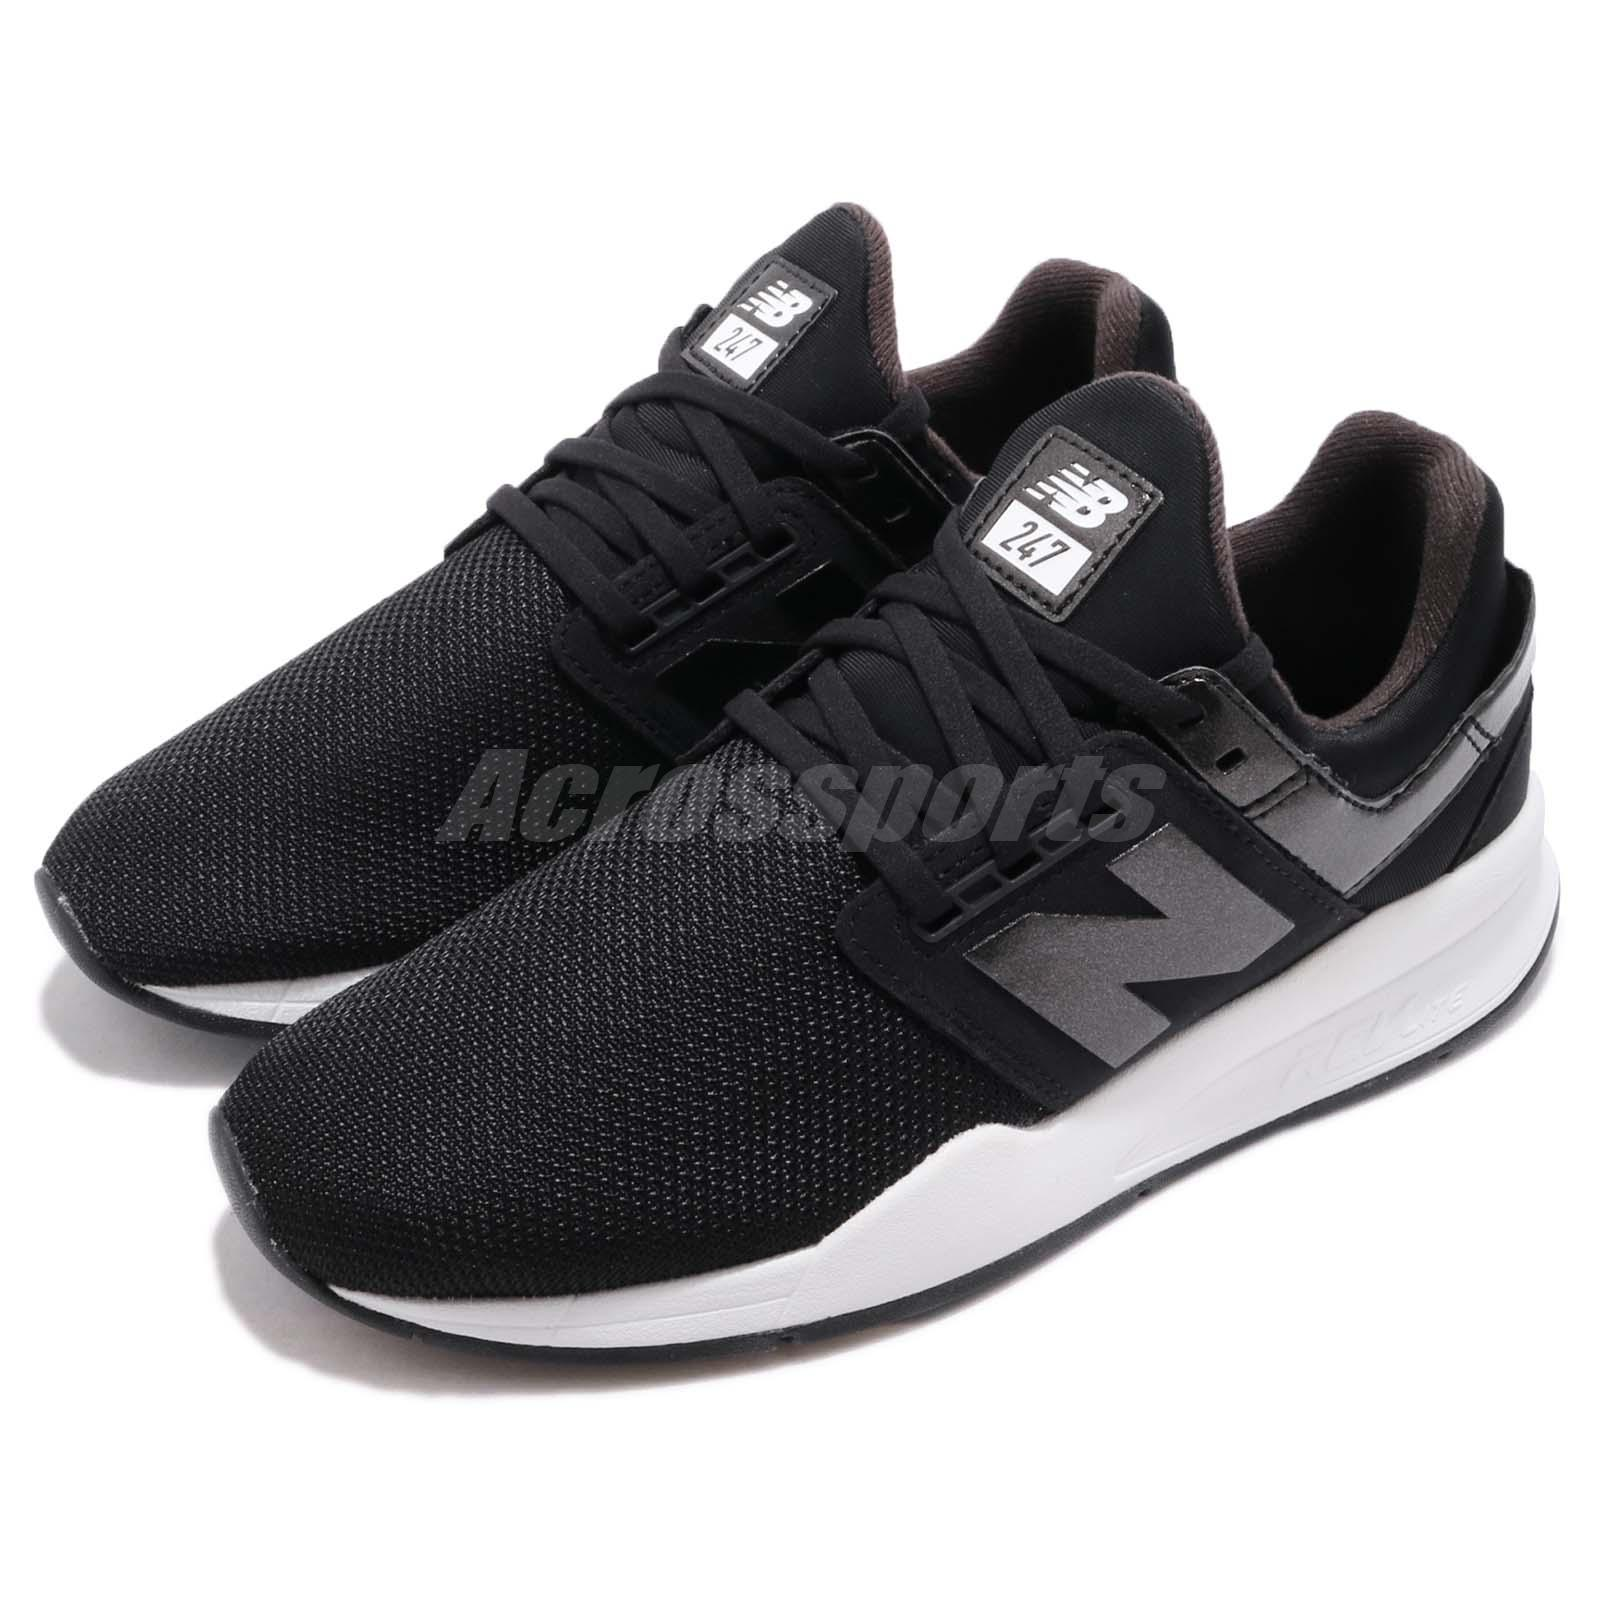 New Balance 005 Size 6 D WIDE EU 36.5 Women/'s Athletic Sneakers Shoes WRL005UC